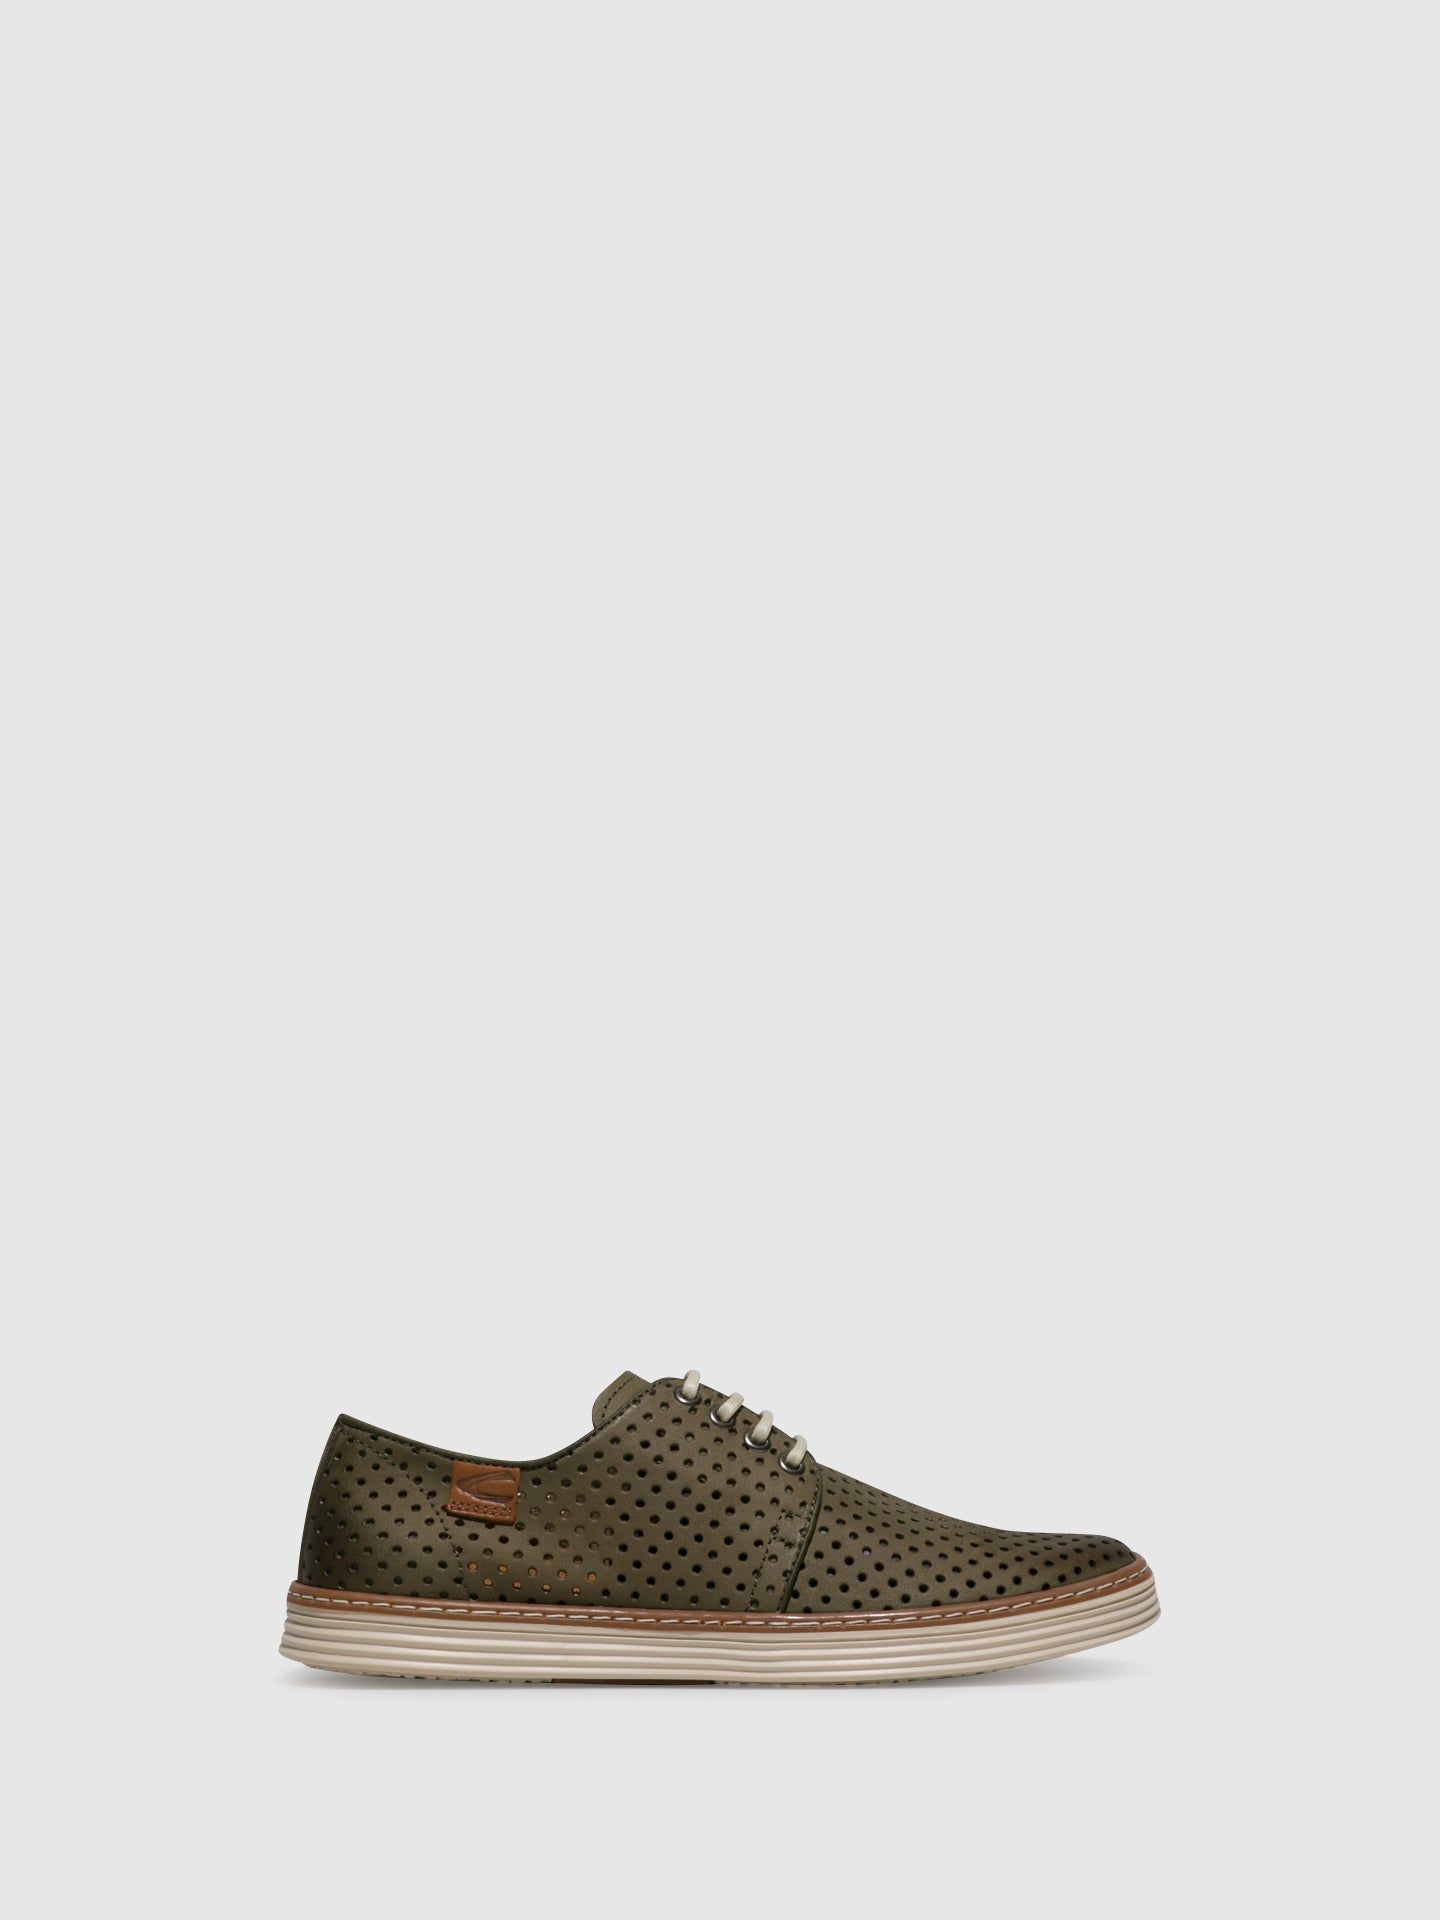 Camel Active Green Lace-up Shoes